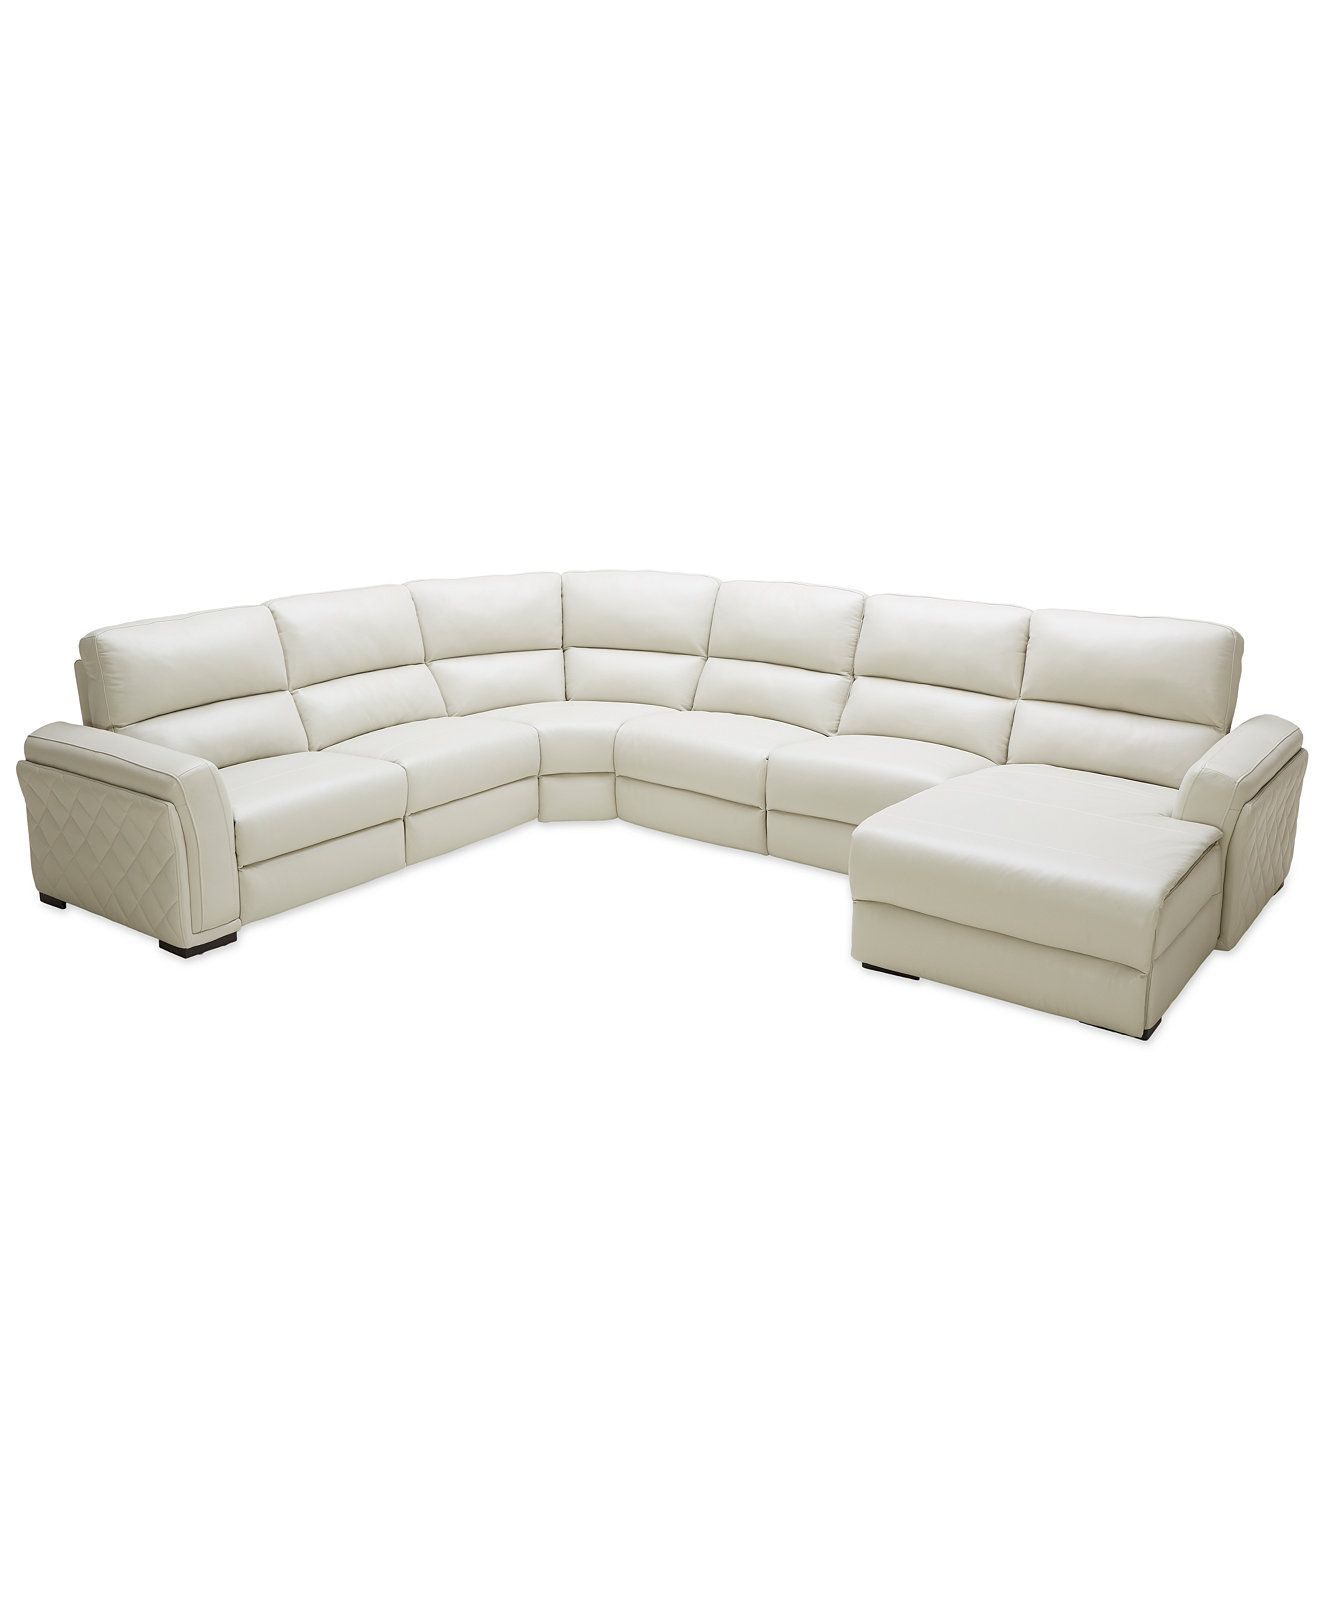 CLOSEOUT! Jessi 6-pc Leather Sectional Sofa with Chaise and 2 Power ...